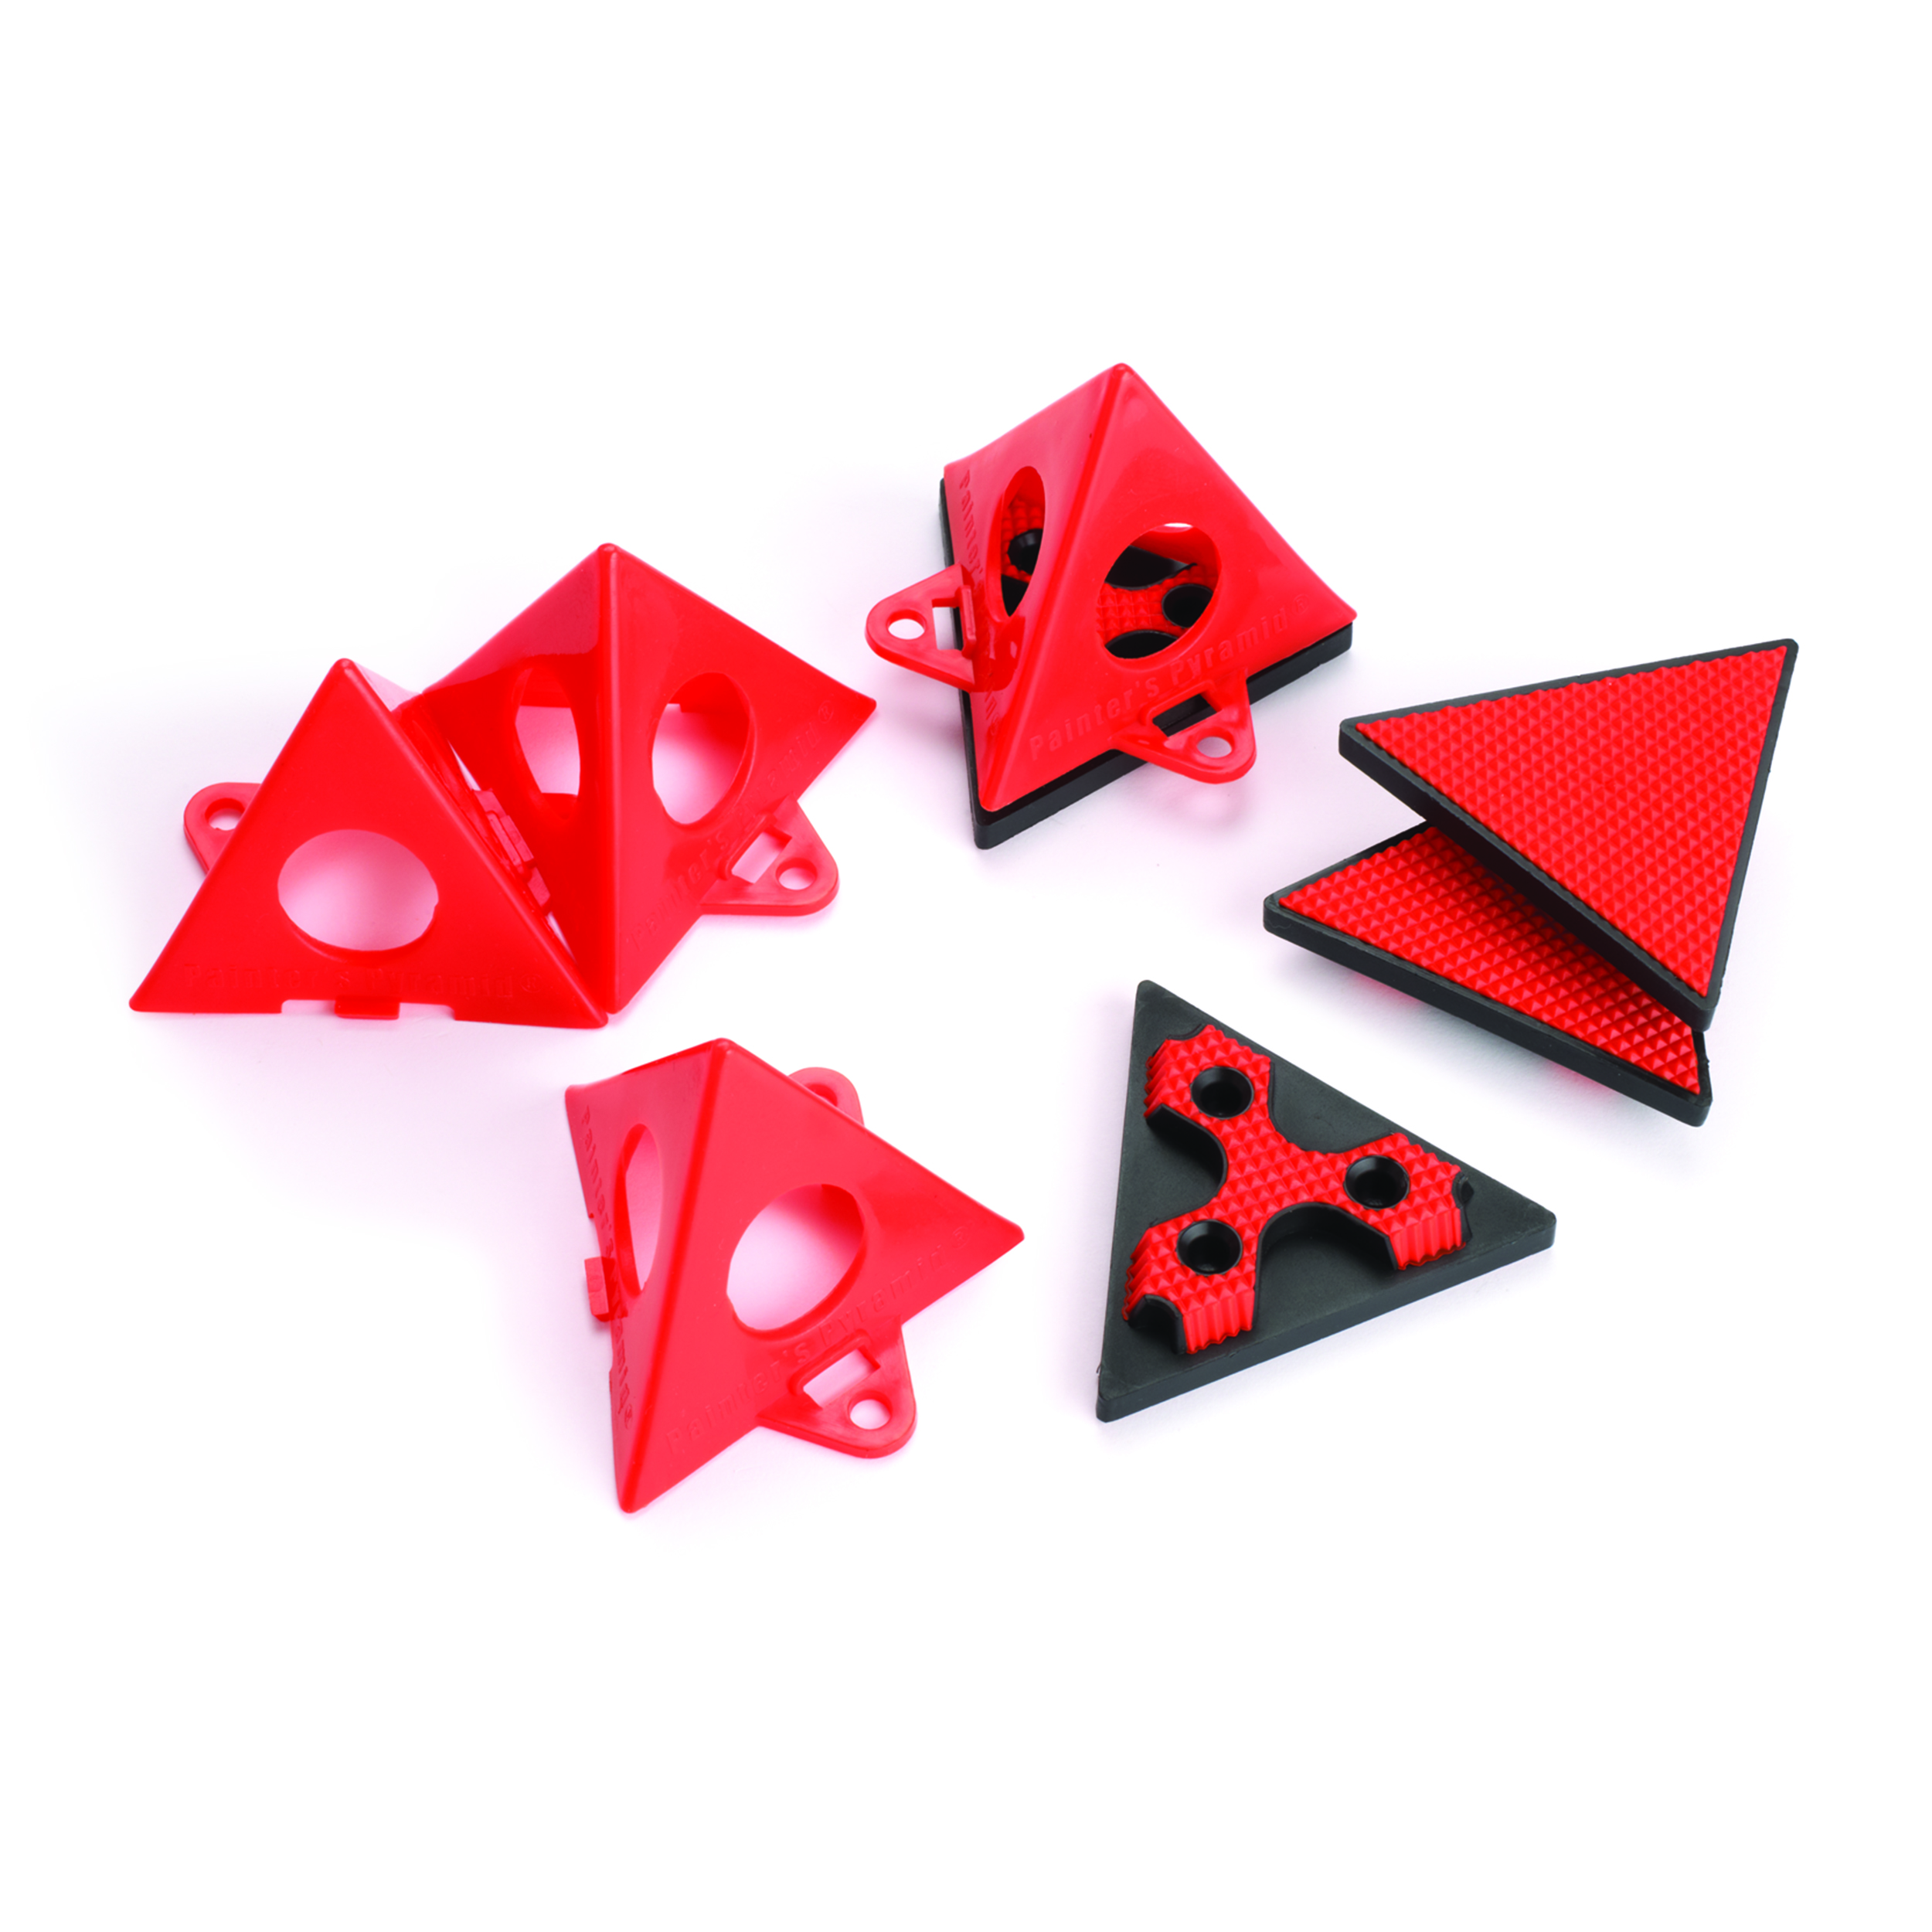 Pyramid Painters Pyramids and Grabbers 4 pc